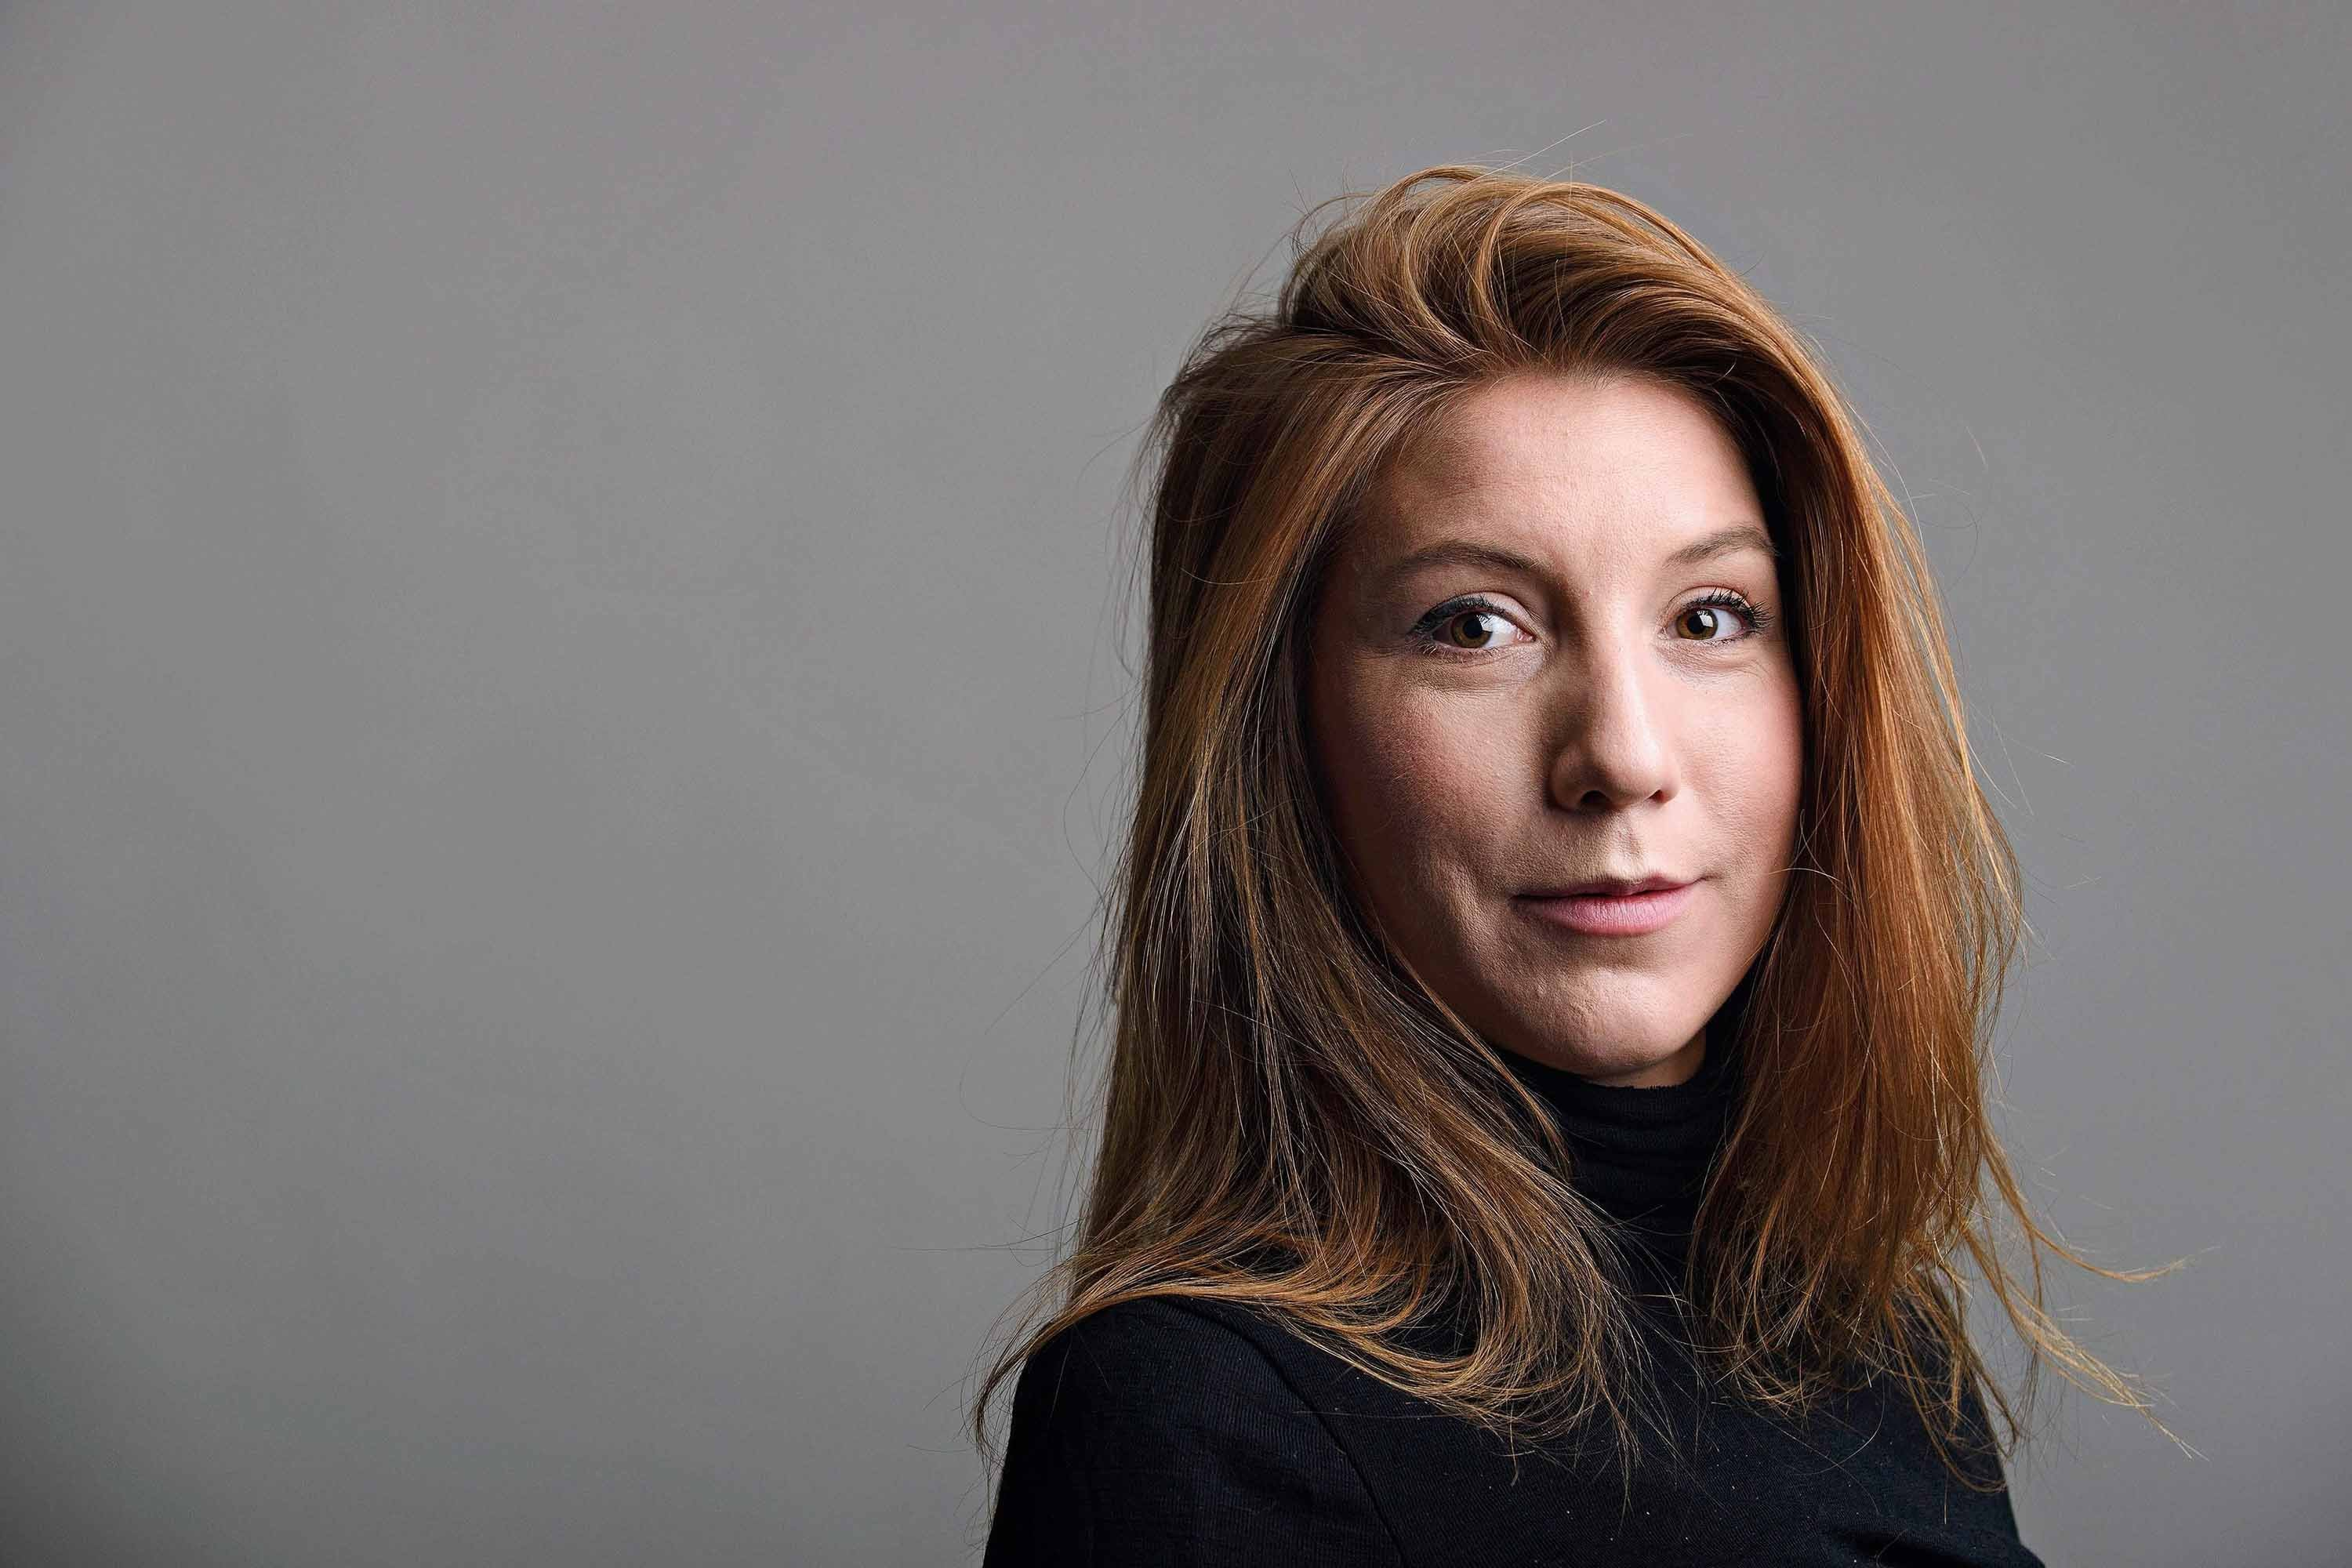 Peter Madsen is accused of killing Kim Wall, pictured, aboard his submarine last August.